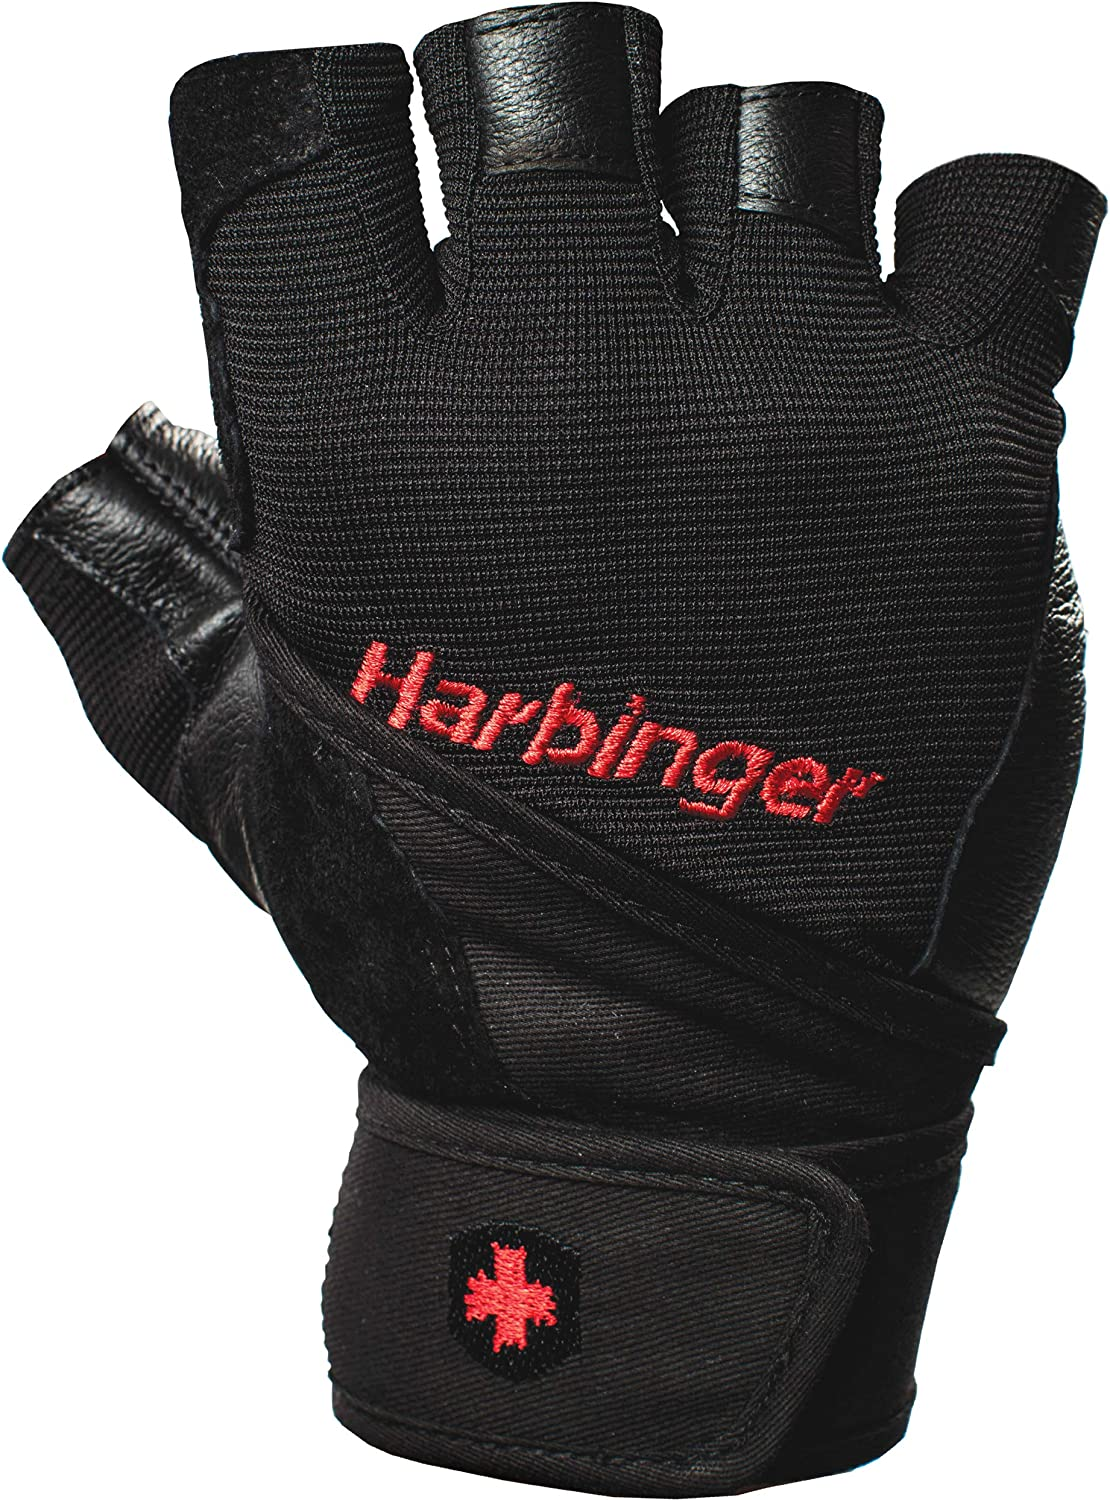 HARBINGER PRO WRISTWRAP STRENGTH POWER GLOVES XL HEAVY LIFTING 114040 BLACK PAIR